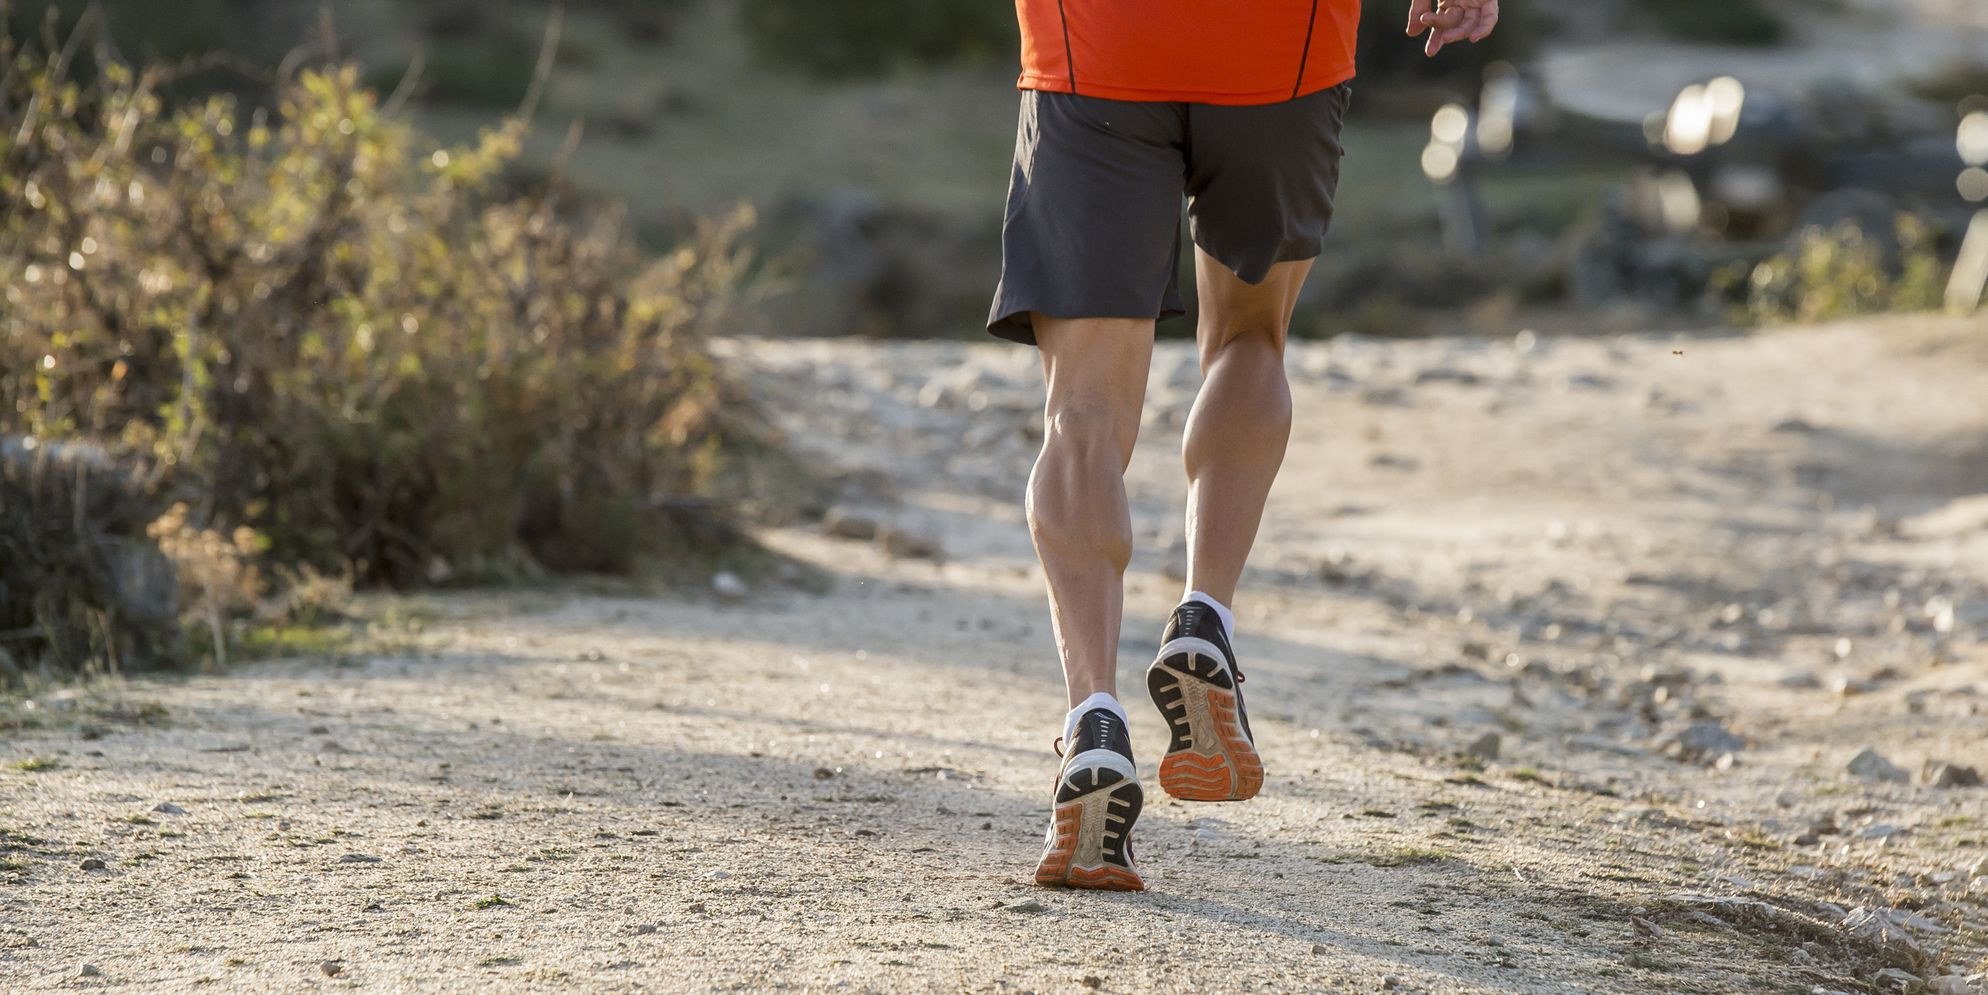 Soleus Muscle Calf Pain From Running